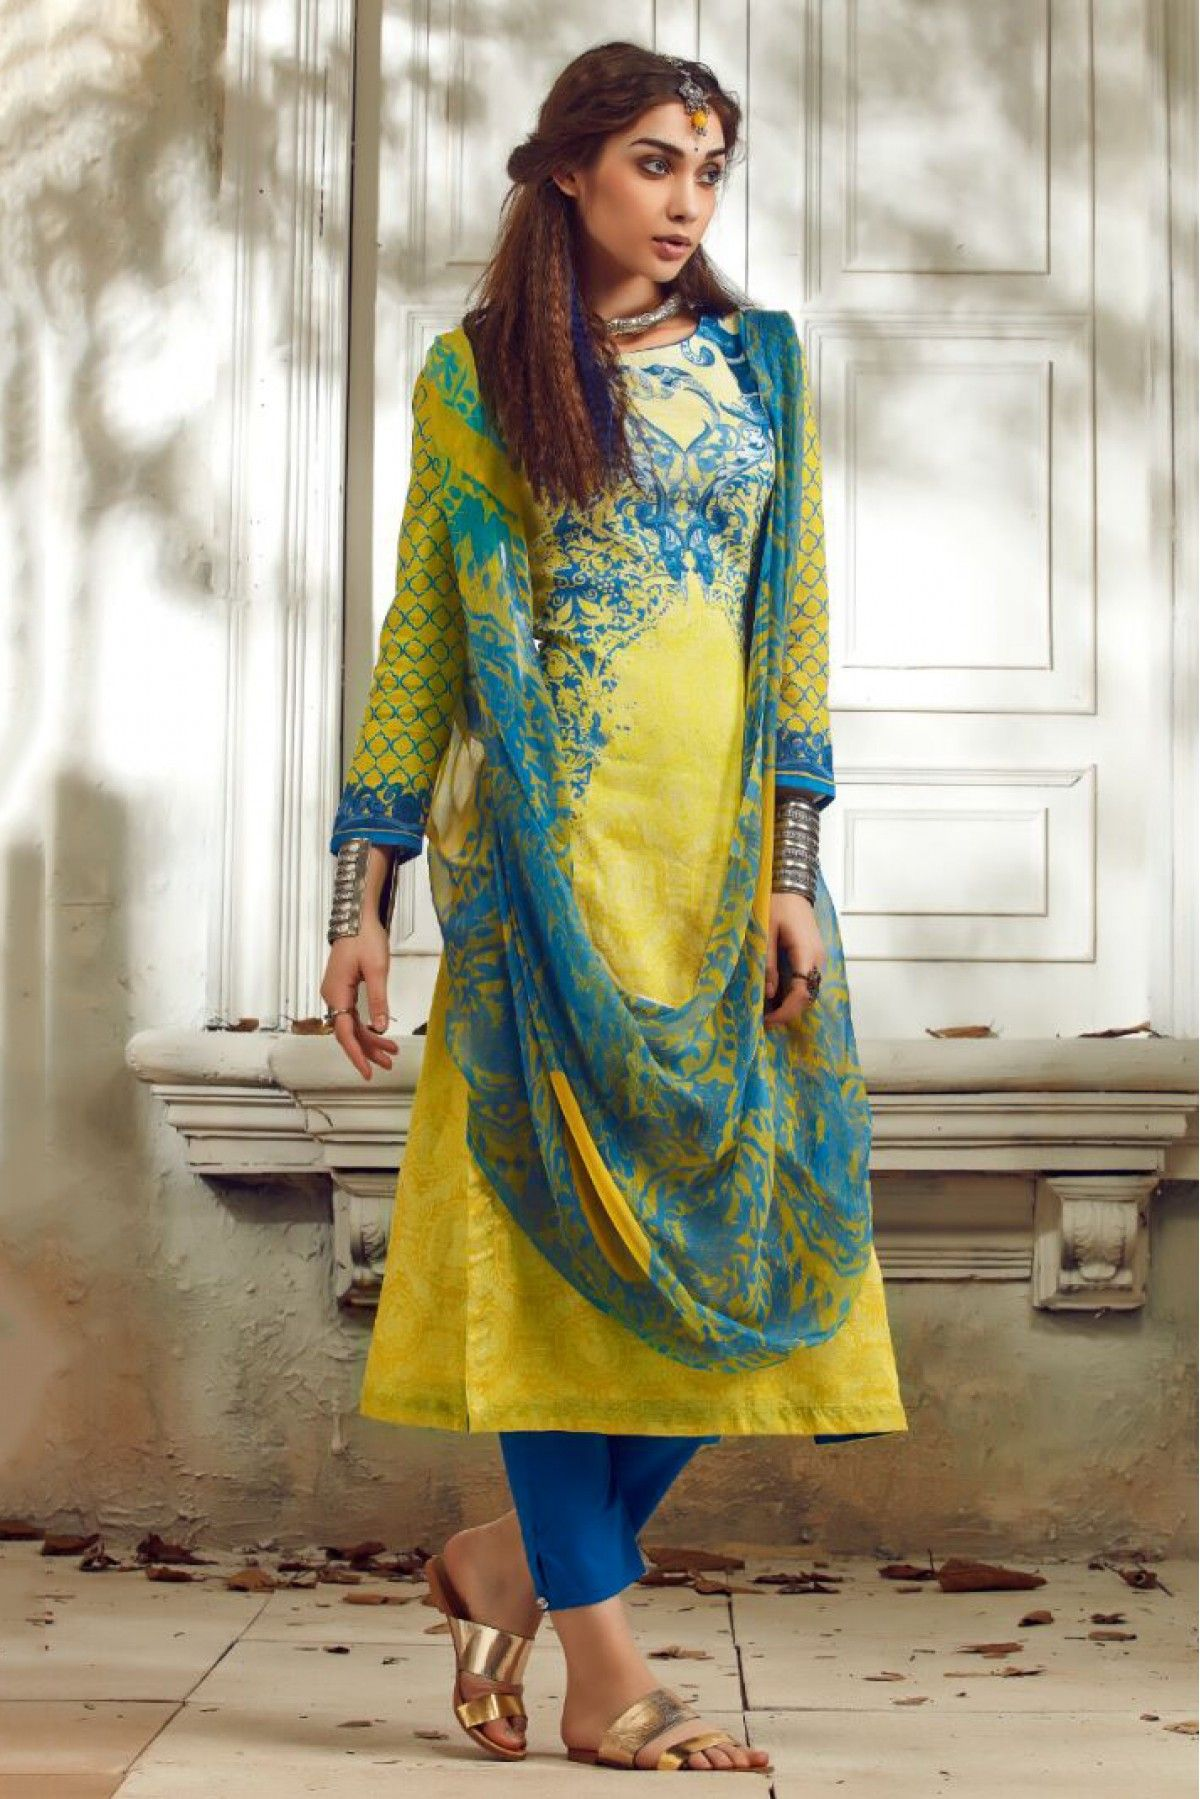 51789747f7 Yellow and Blue Colour Linen Fabric Party Wear Unstitched Pakistani Suit  Comes With Matching Bottom and Dupatta Fabric. This Suit Is Crafted With  Digital ...